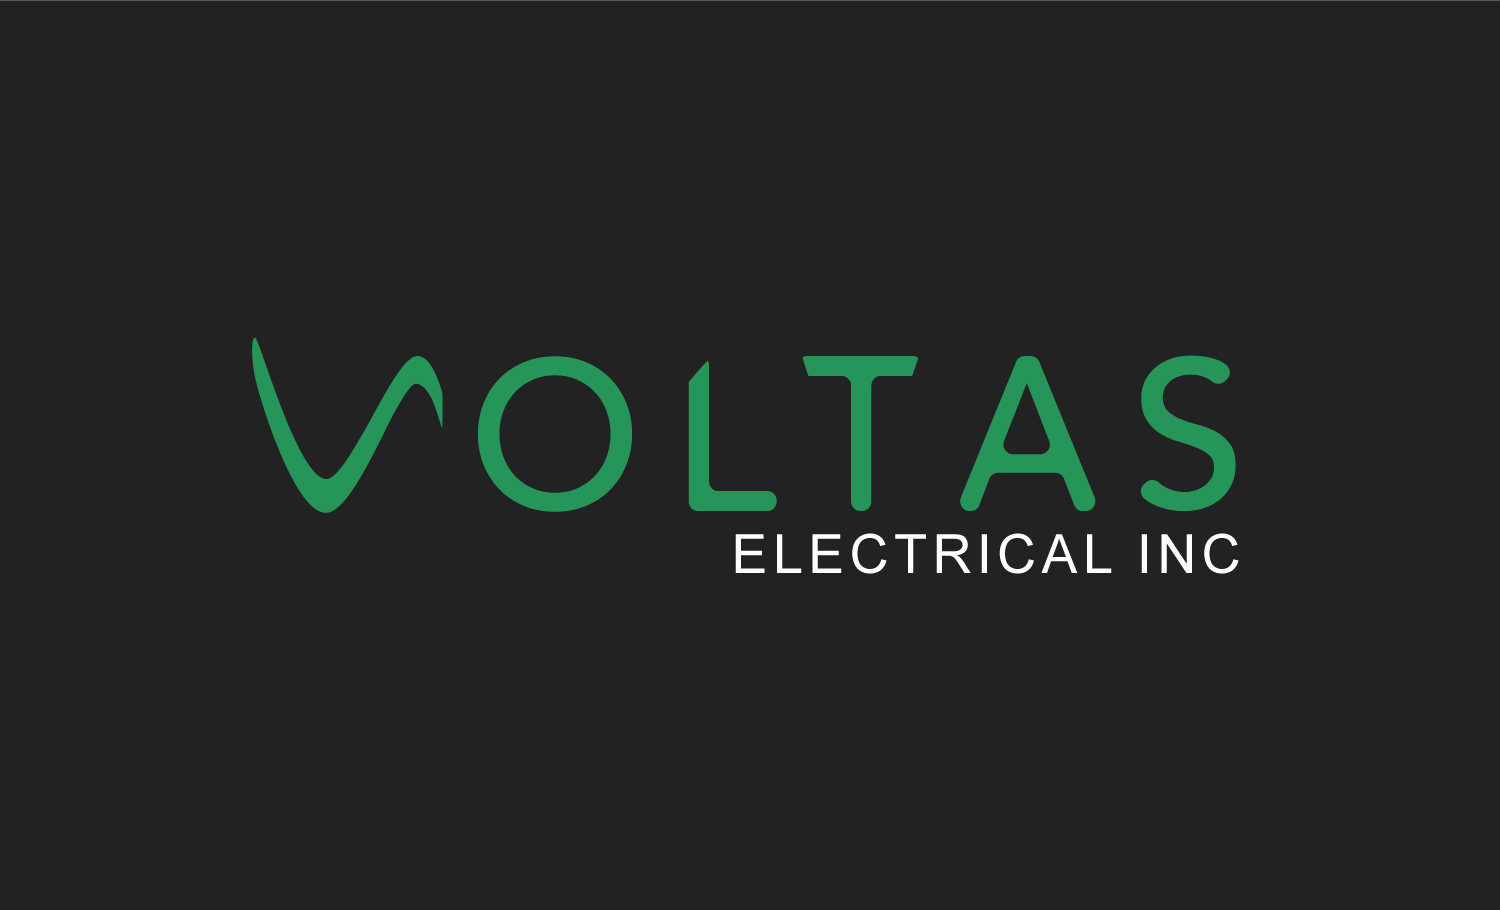 Voltas-electrical-3.5x2_business_cards_front2.jpg